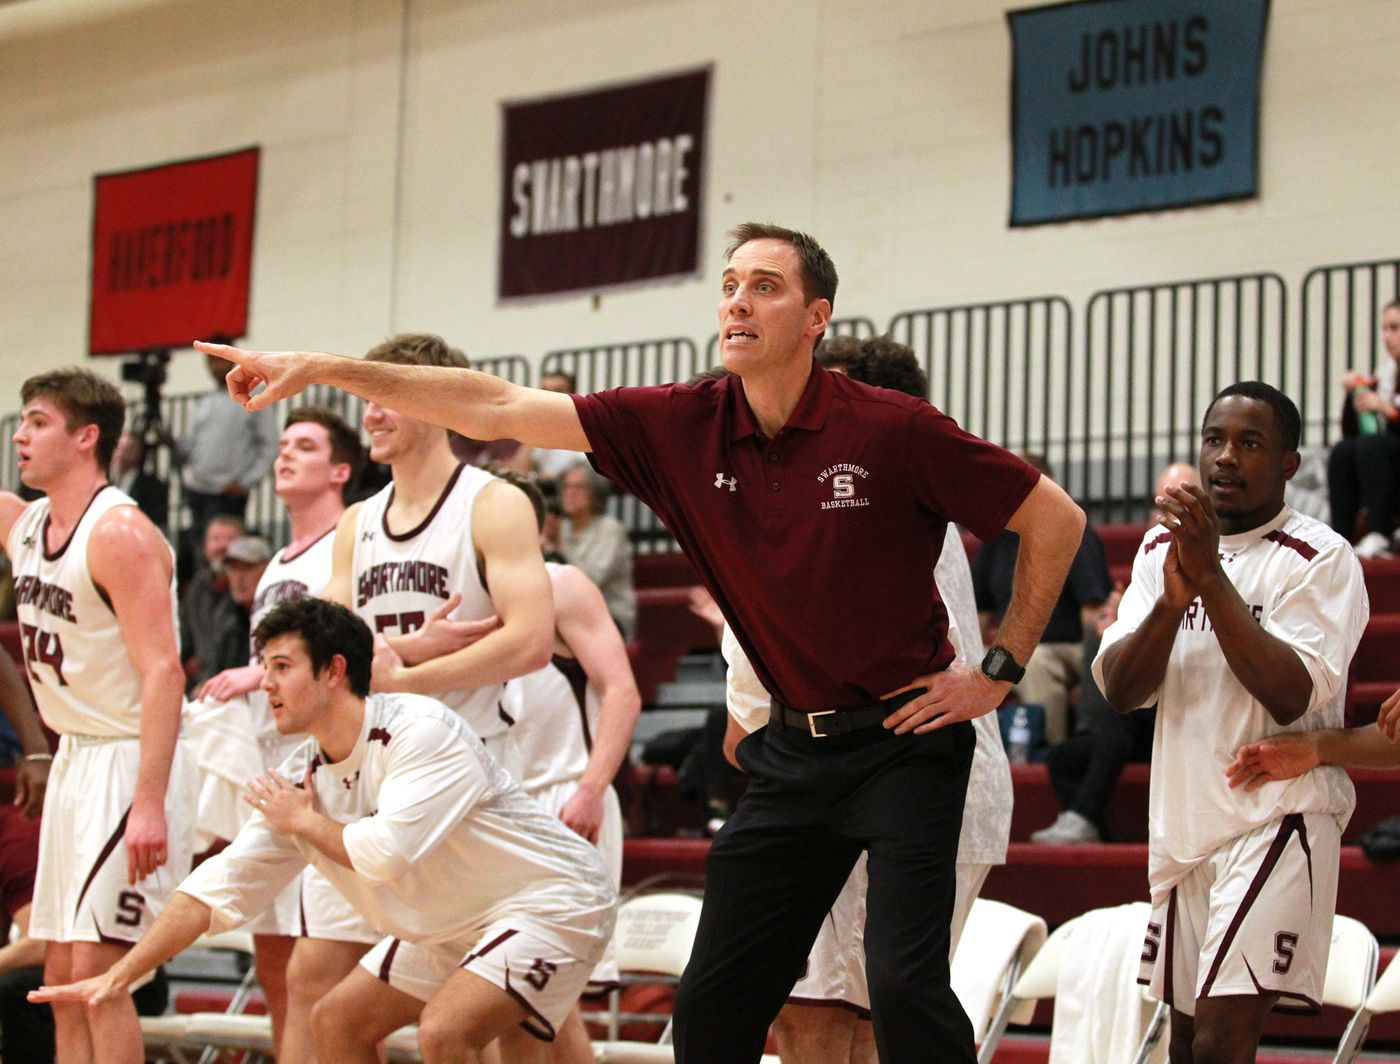 Swarthmore College Basketball Team Ranked No. 1 in Country in Division III